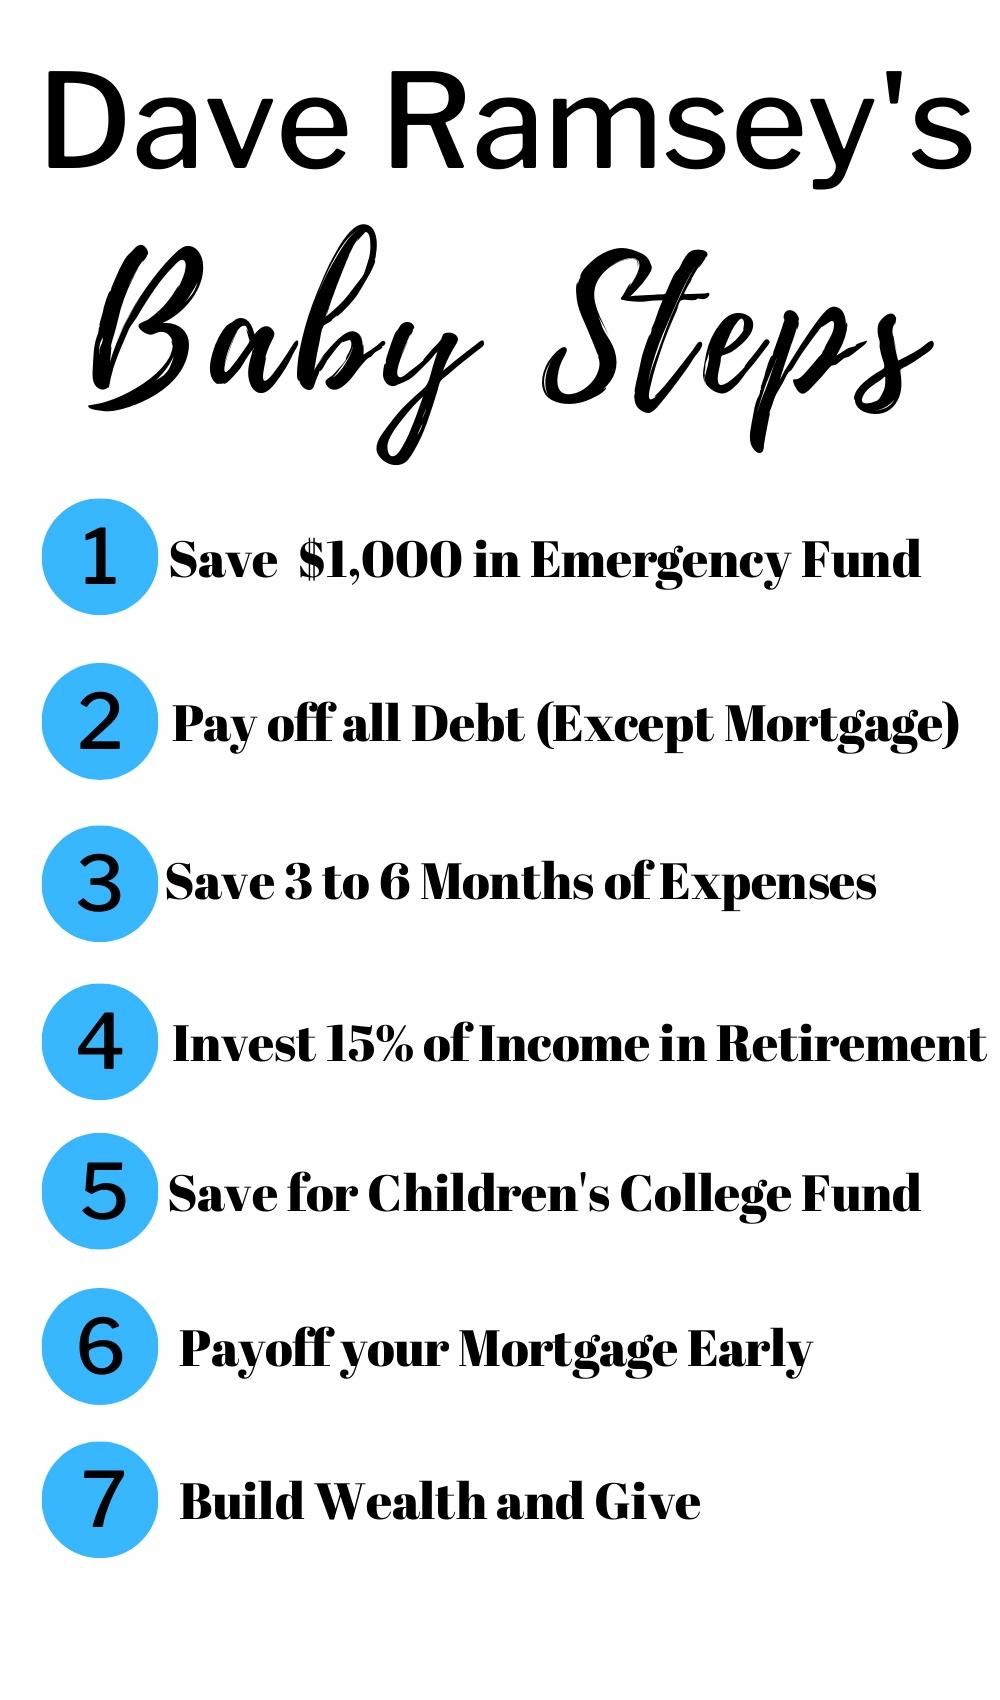 These Dave Ramsey tips on money have saved us hundreds! You definitely don't want to miss these Dave Ramsey tips! They include Dave Ramsey's budgeting tips, Dave Ramsey's savings plan and more! #getoutofdebttips #daveramseytips #daveramseysnowball #daveramseybudget #daveramsey #savemoney #budgeting #daveramseysaving #daveramseysavingsplan #daveramseybudgetingtips